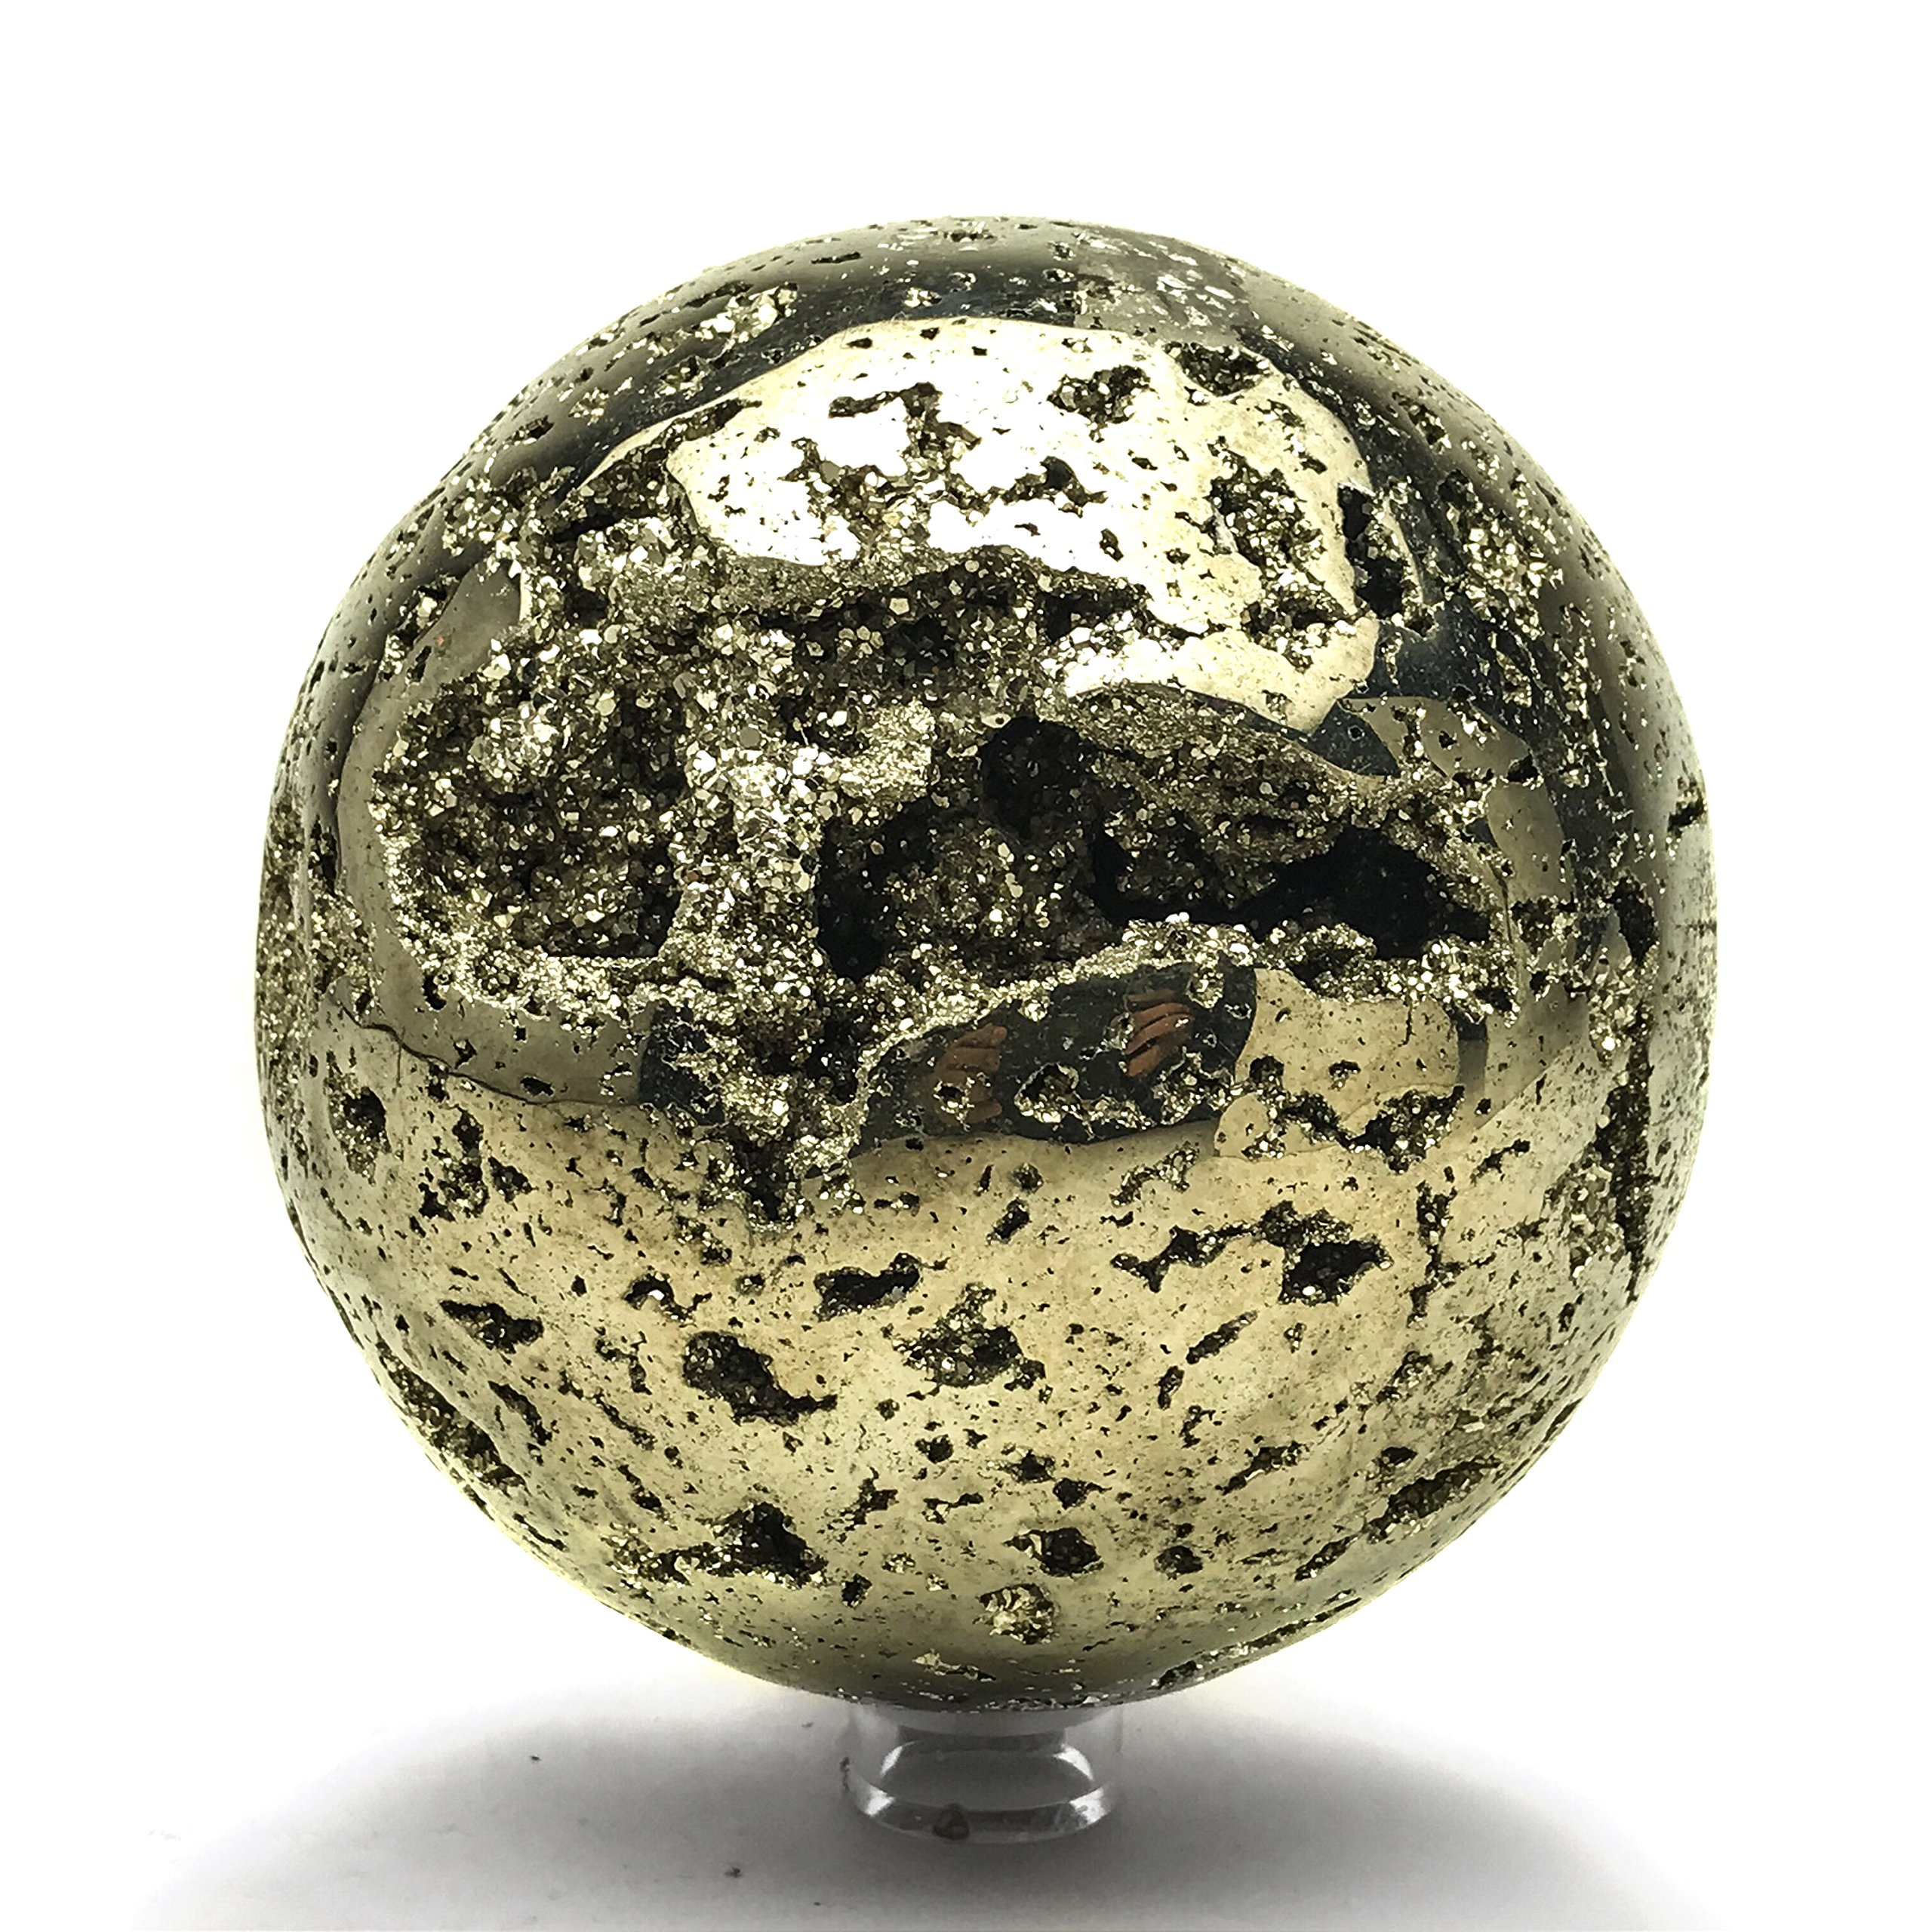 Astro Gallery Of Gems Large Polished Pyrite Sphere (4.7'' diameter, 9.5 lbs)